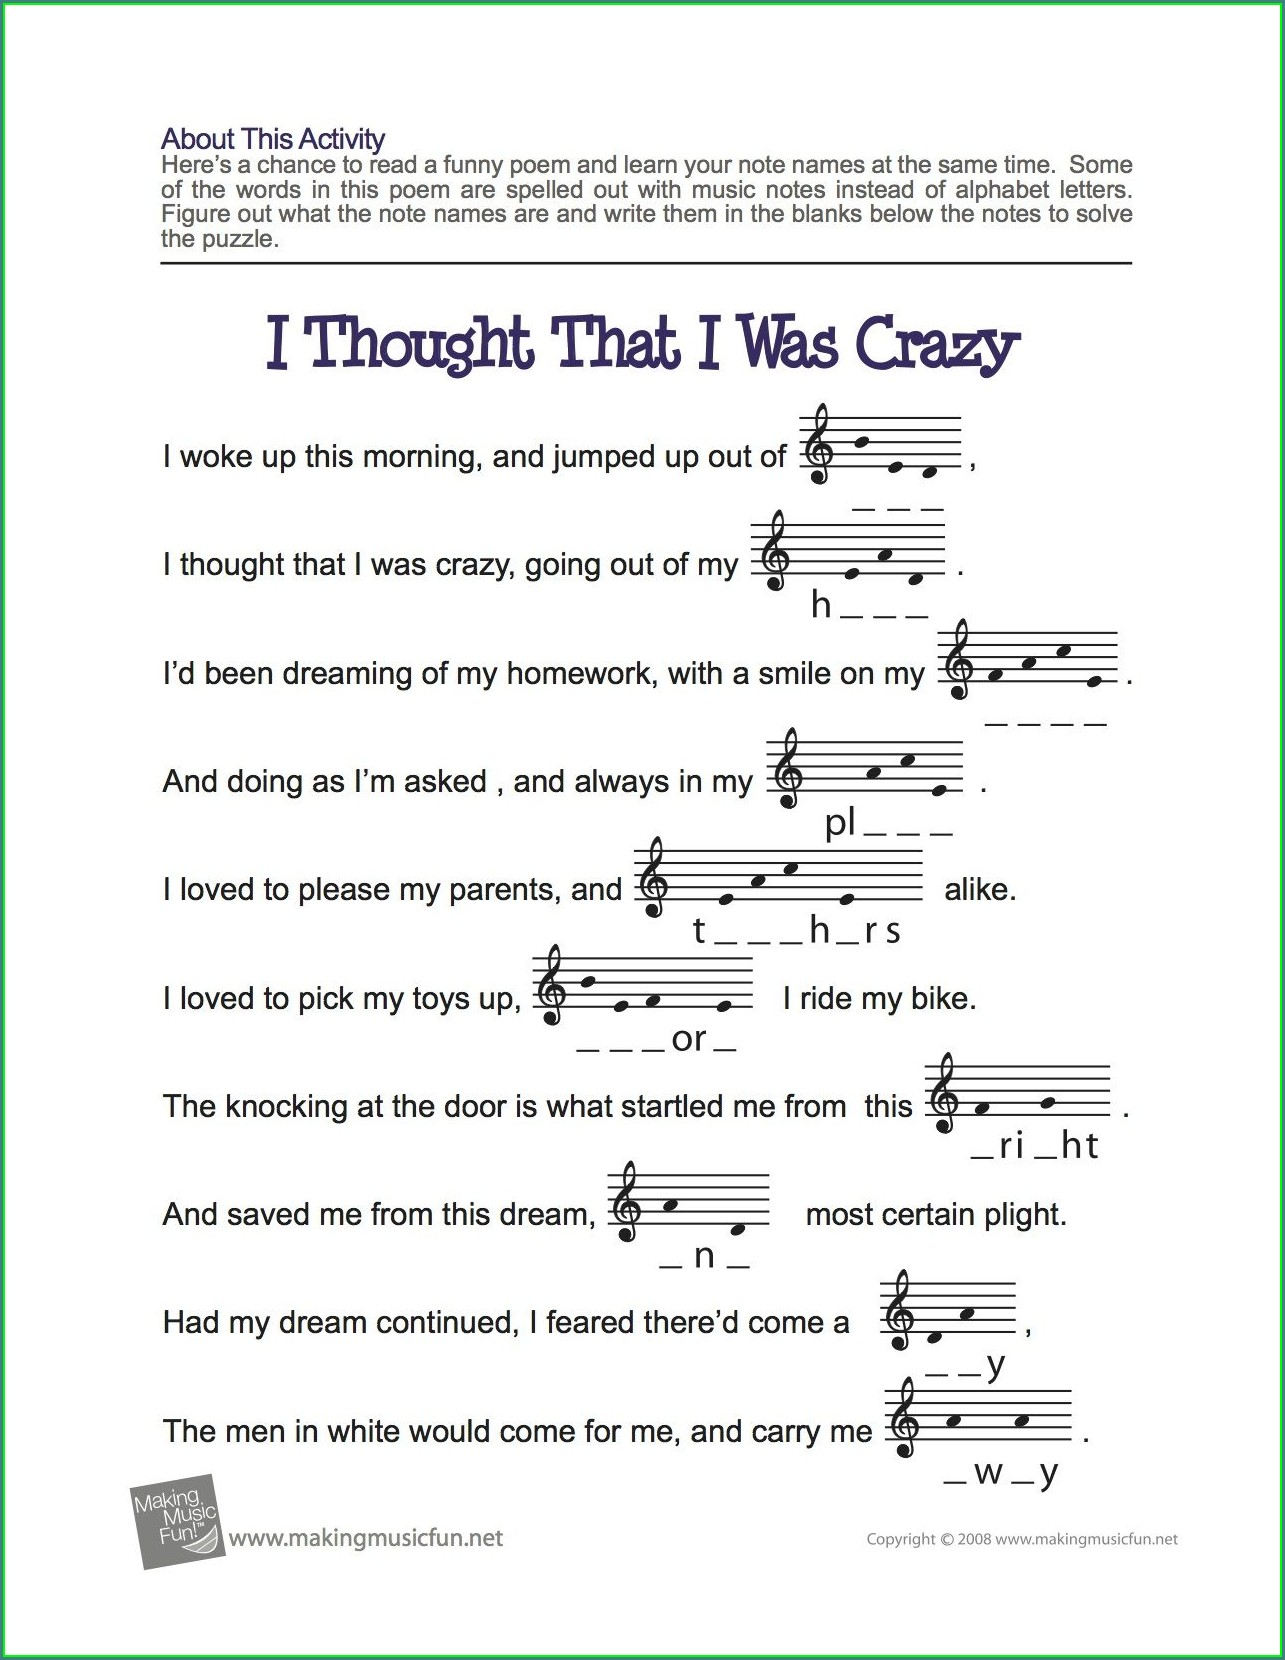 Spelling Words With Music Notes Worksheet